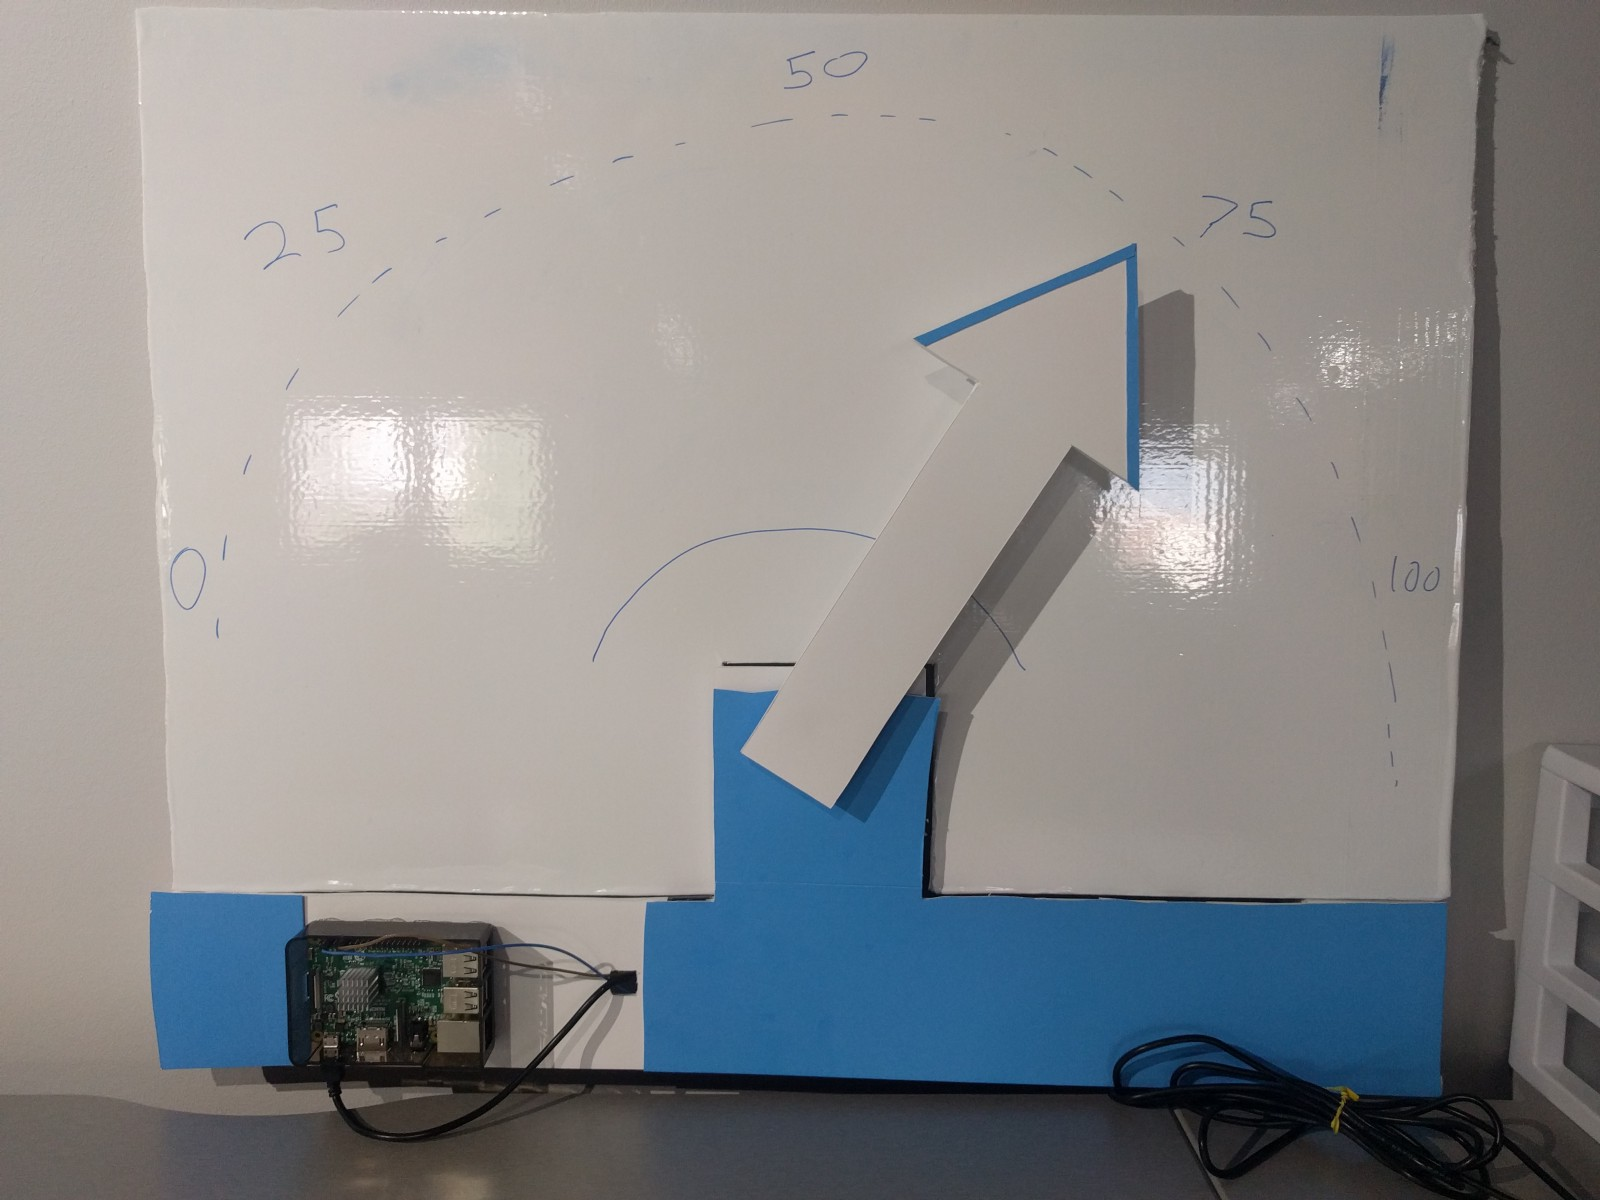 Raspberry Pi Office Art Display Tutorial Andrew Baker Medium Wiringpi Pwm Mode As A Fun Project And Way To Get Familiar With The Popular Platform I Decided Build Real Life That Can Hang On Wall Be